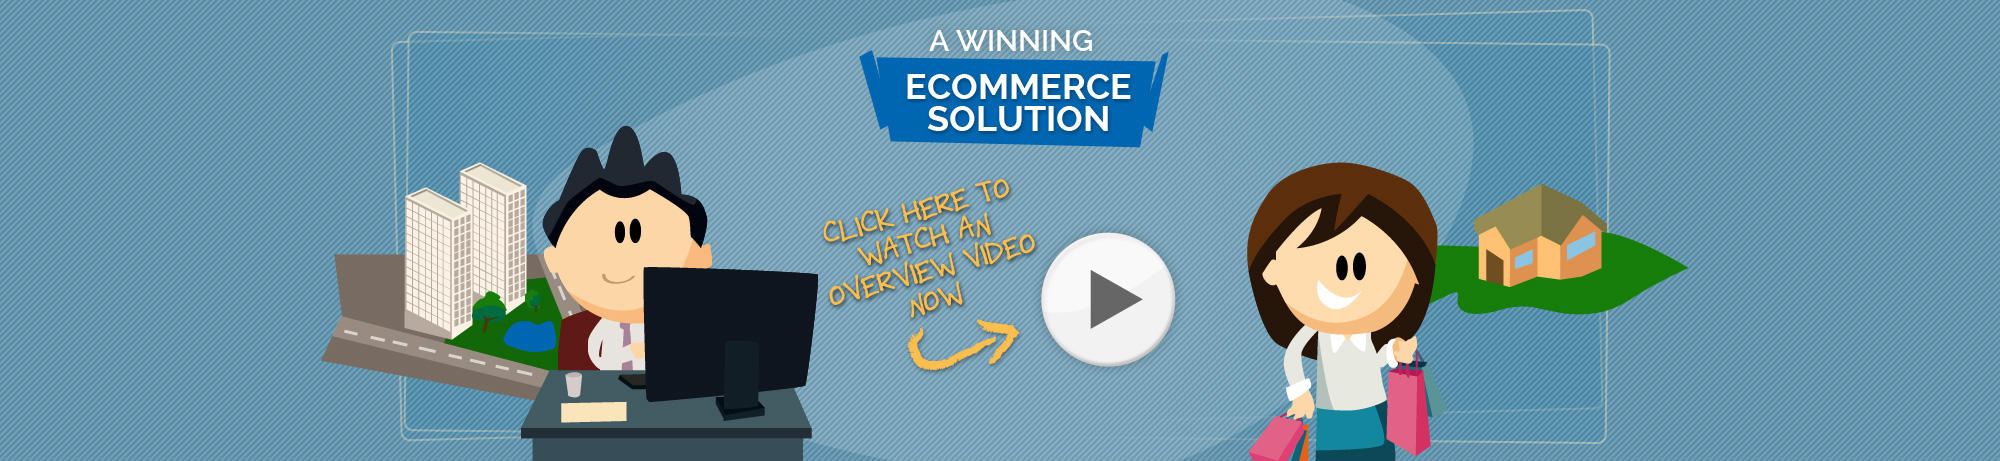 An Enterprise Omni-Channel eCommerce Solution